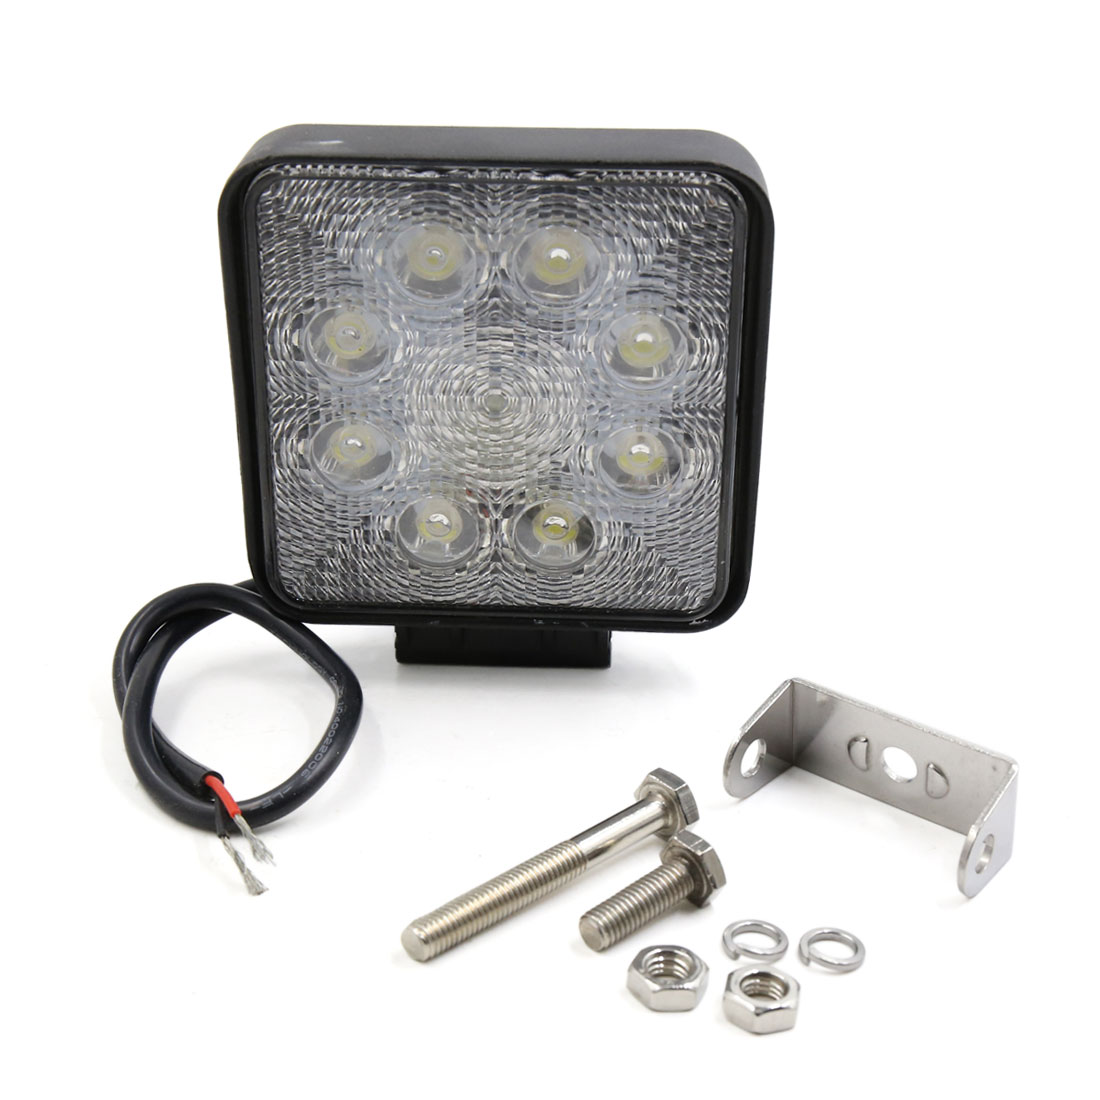 Black Metal Square Shell 24W Spot Beam 8 LED Work Light Fog Driving Lamp for Offroad ATV SUV Internal